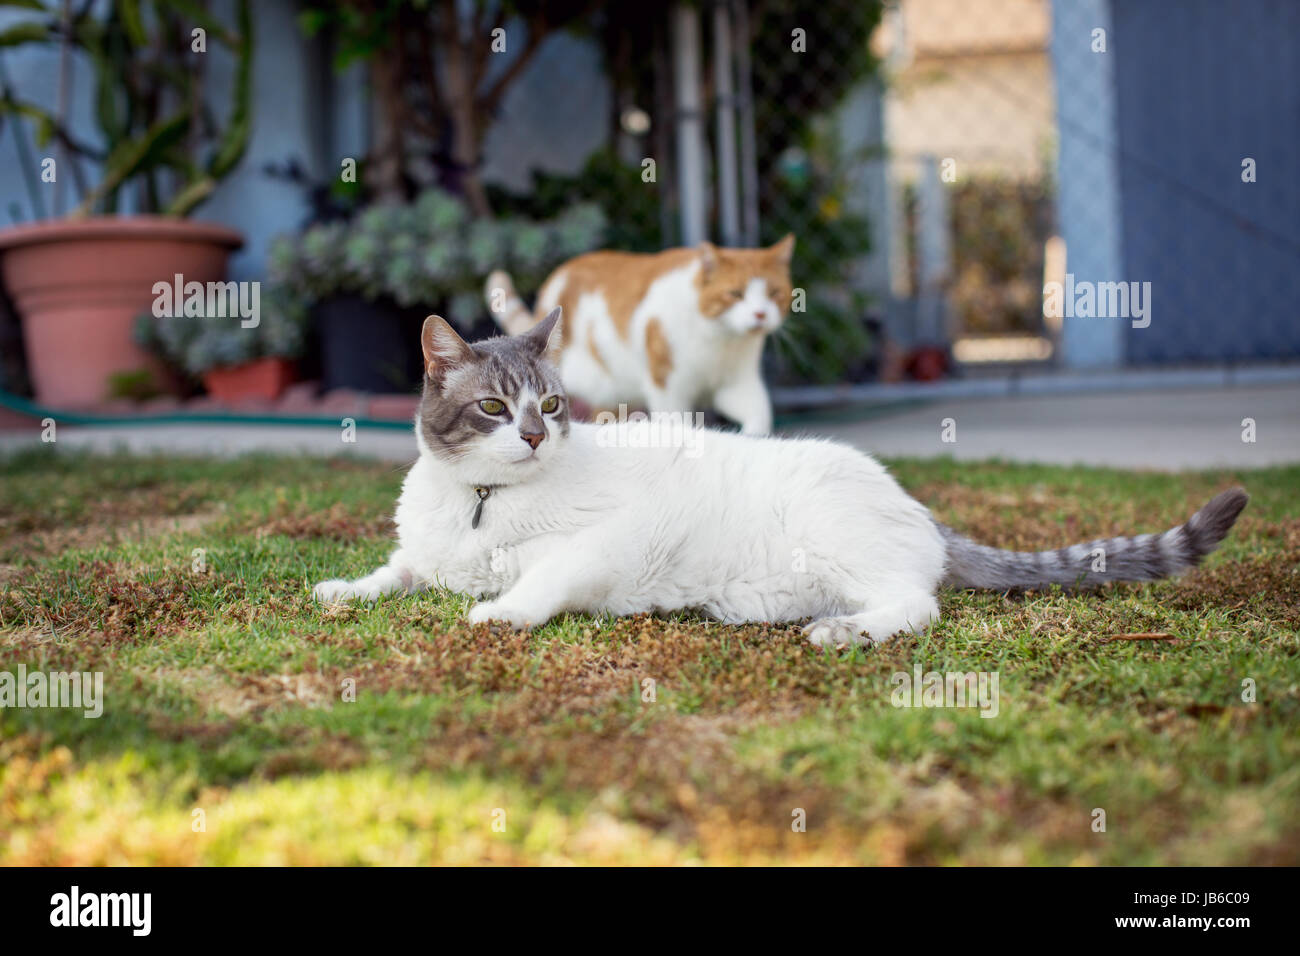 White cat lounging on grass lawn in front yard while an orange cat saunters past in the background. - Stock Image